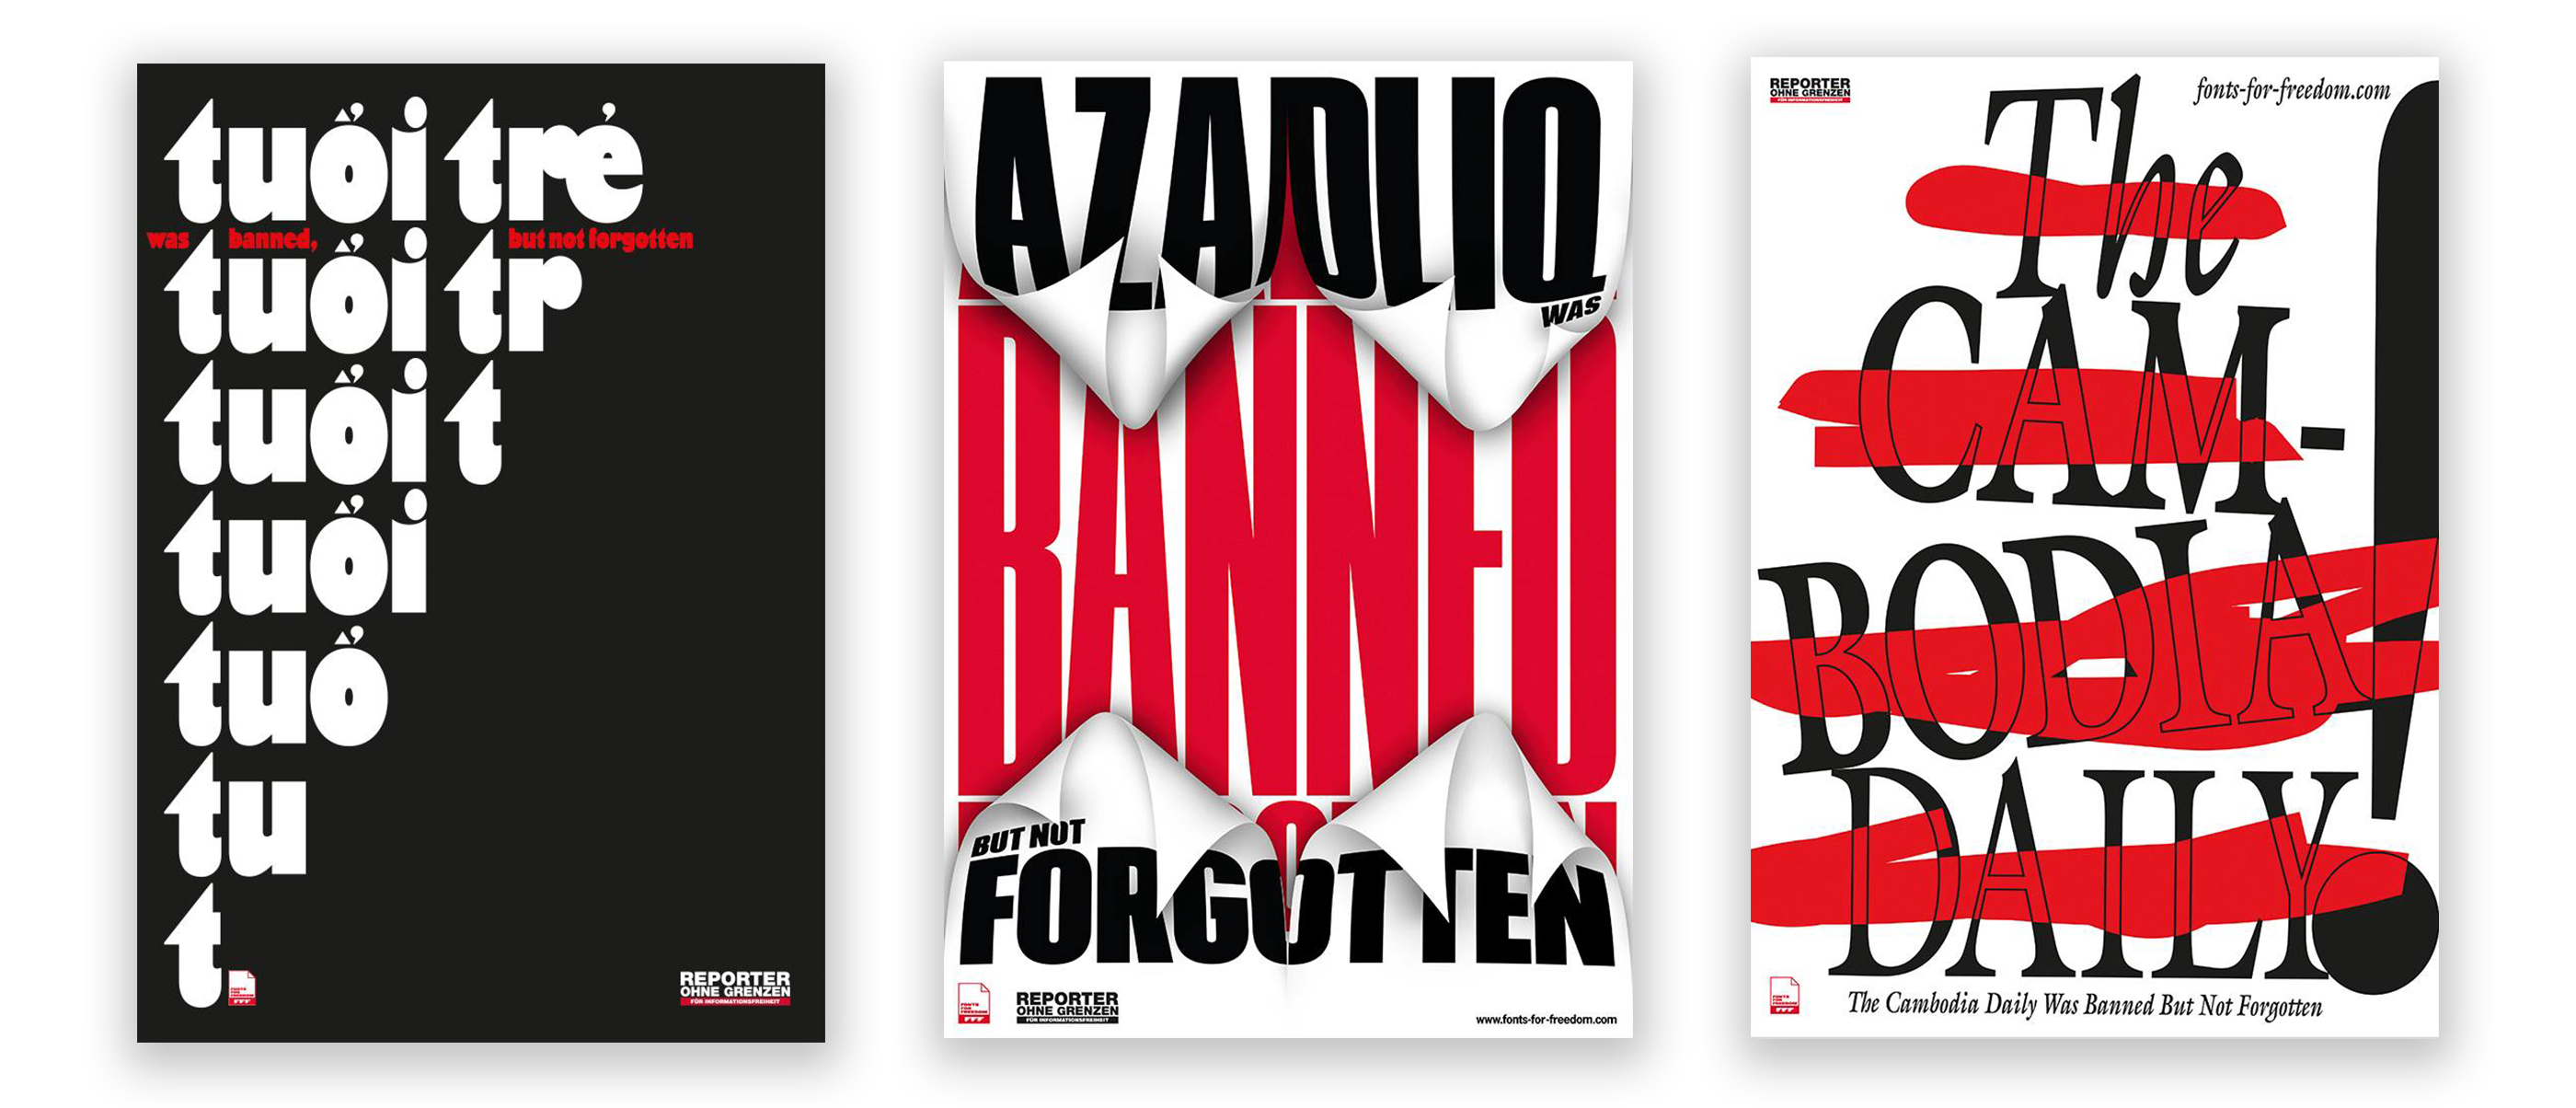 18-fonts-for-freedom-reporters-without-borders-posters